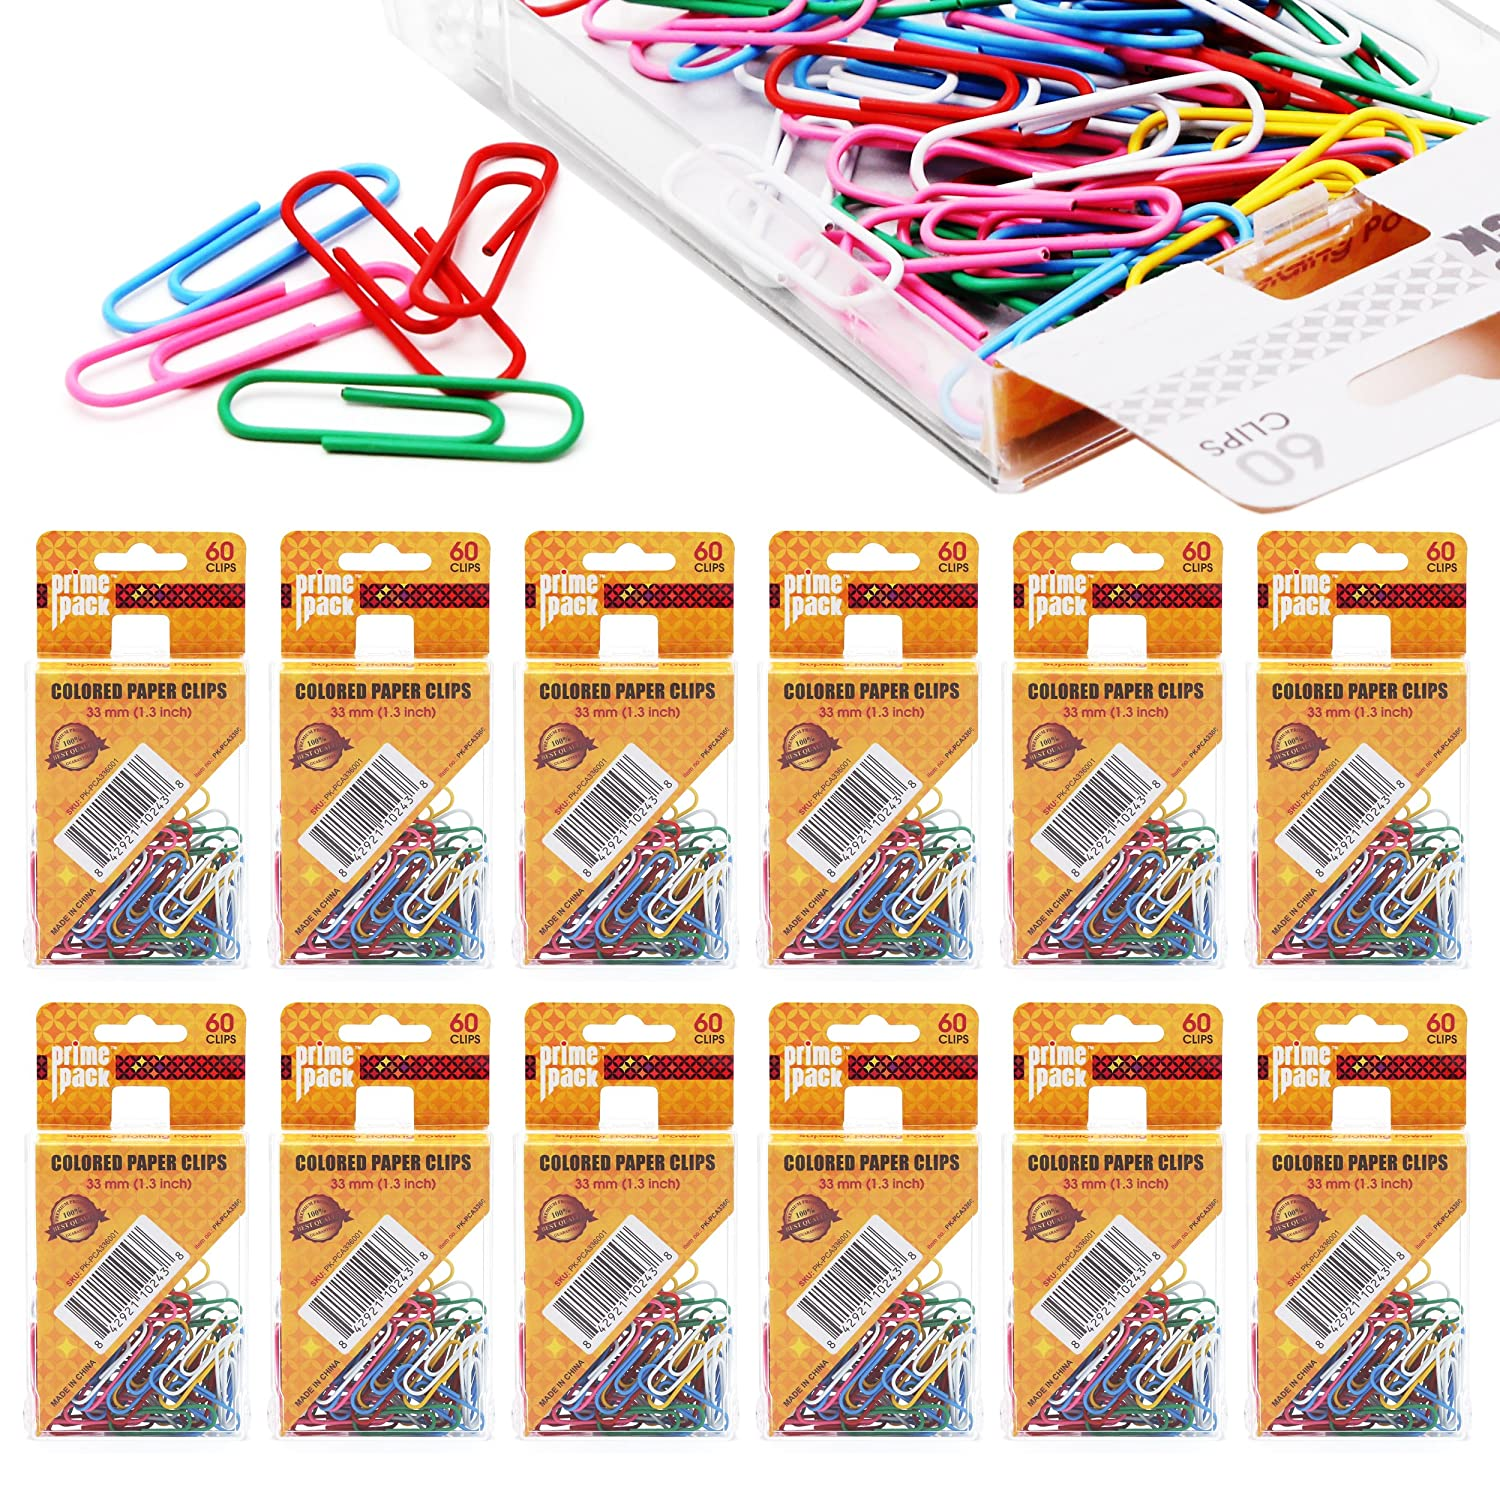 PRIMEPACK Vinyl Coated Paper Clips | Standard Size, Assorted Colors - Durable with Superior Holding Power - Perfect for School, Office and Home Use - 720 Pack GRANDEGO